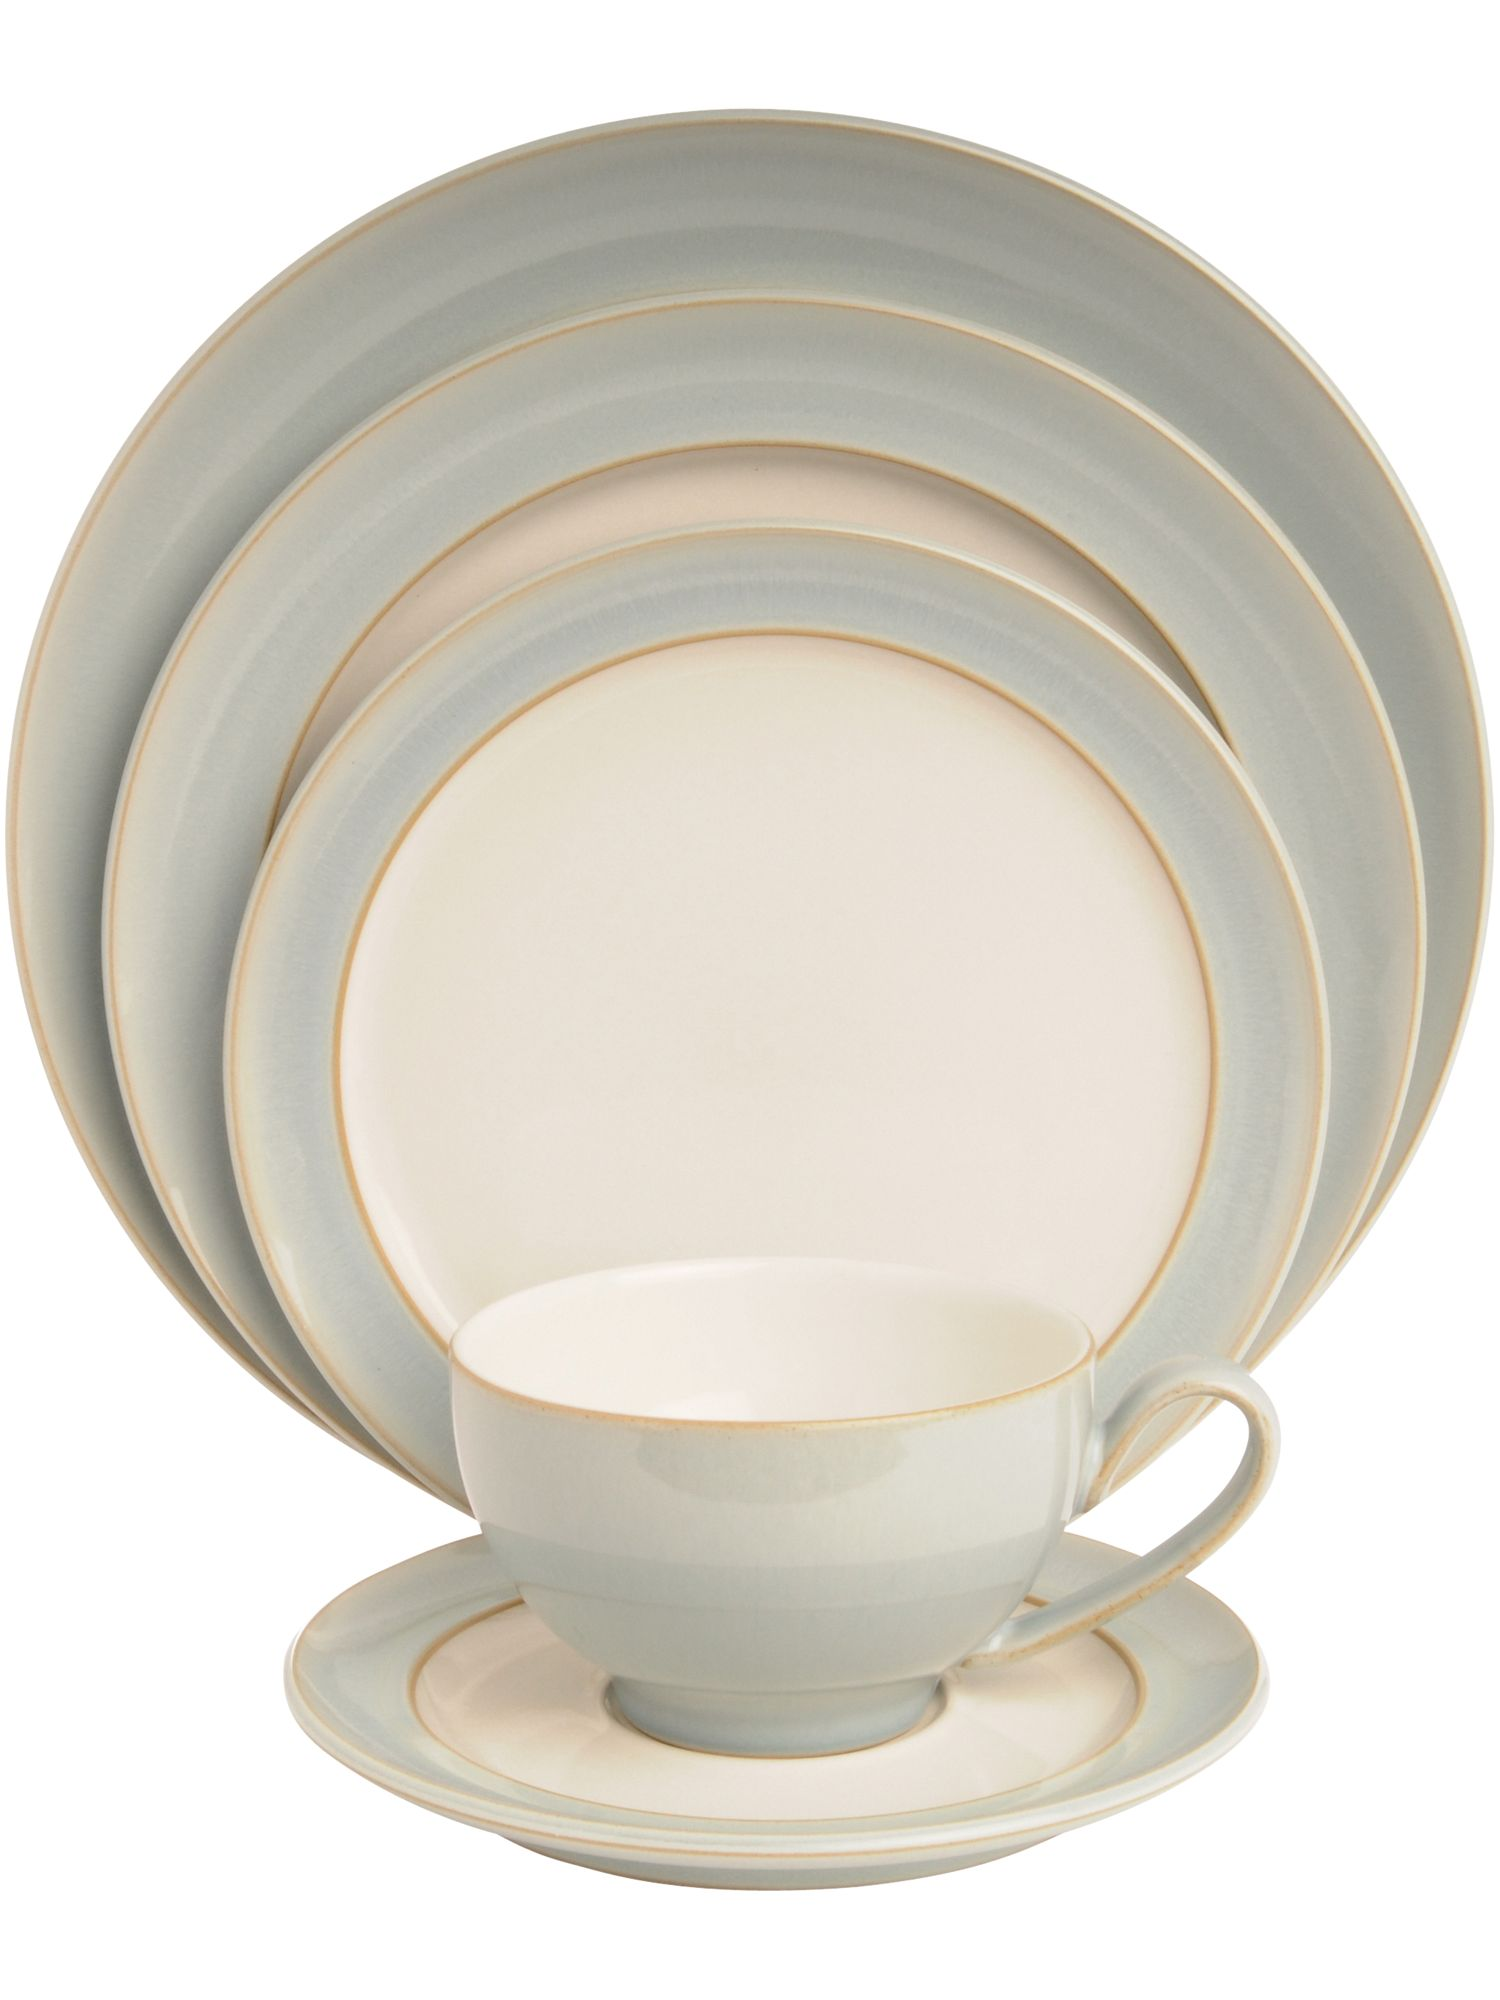 Natural Blue dinnerware range